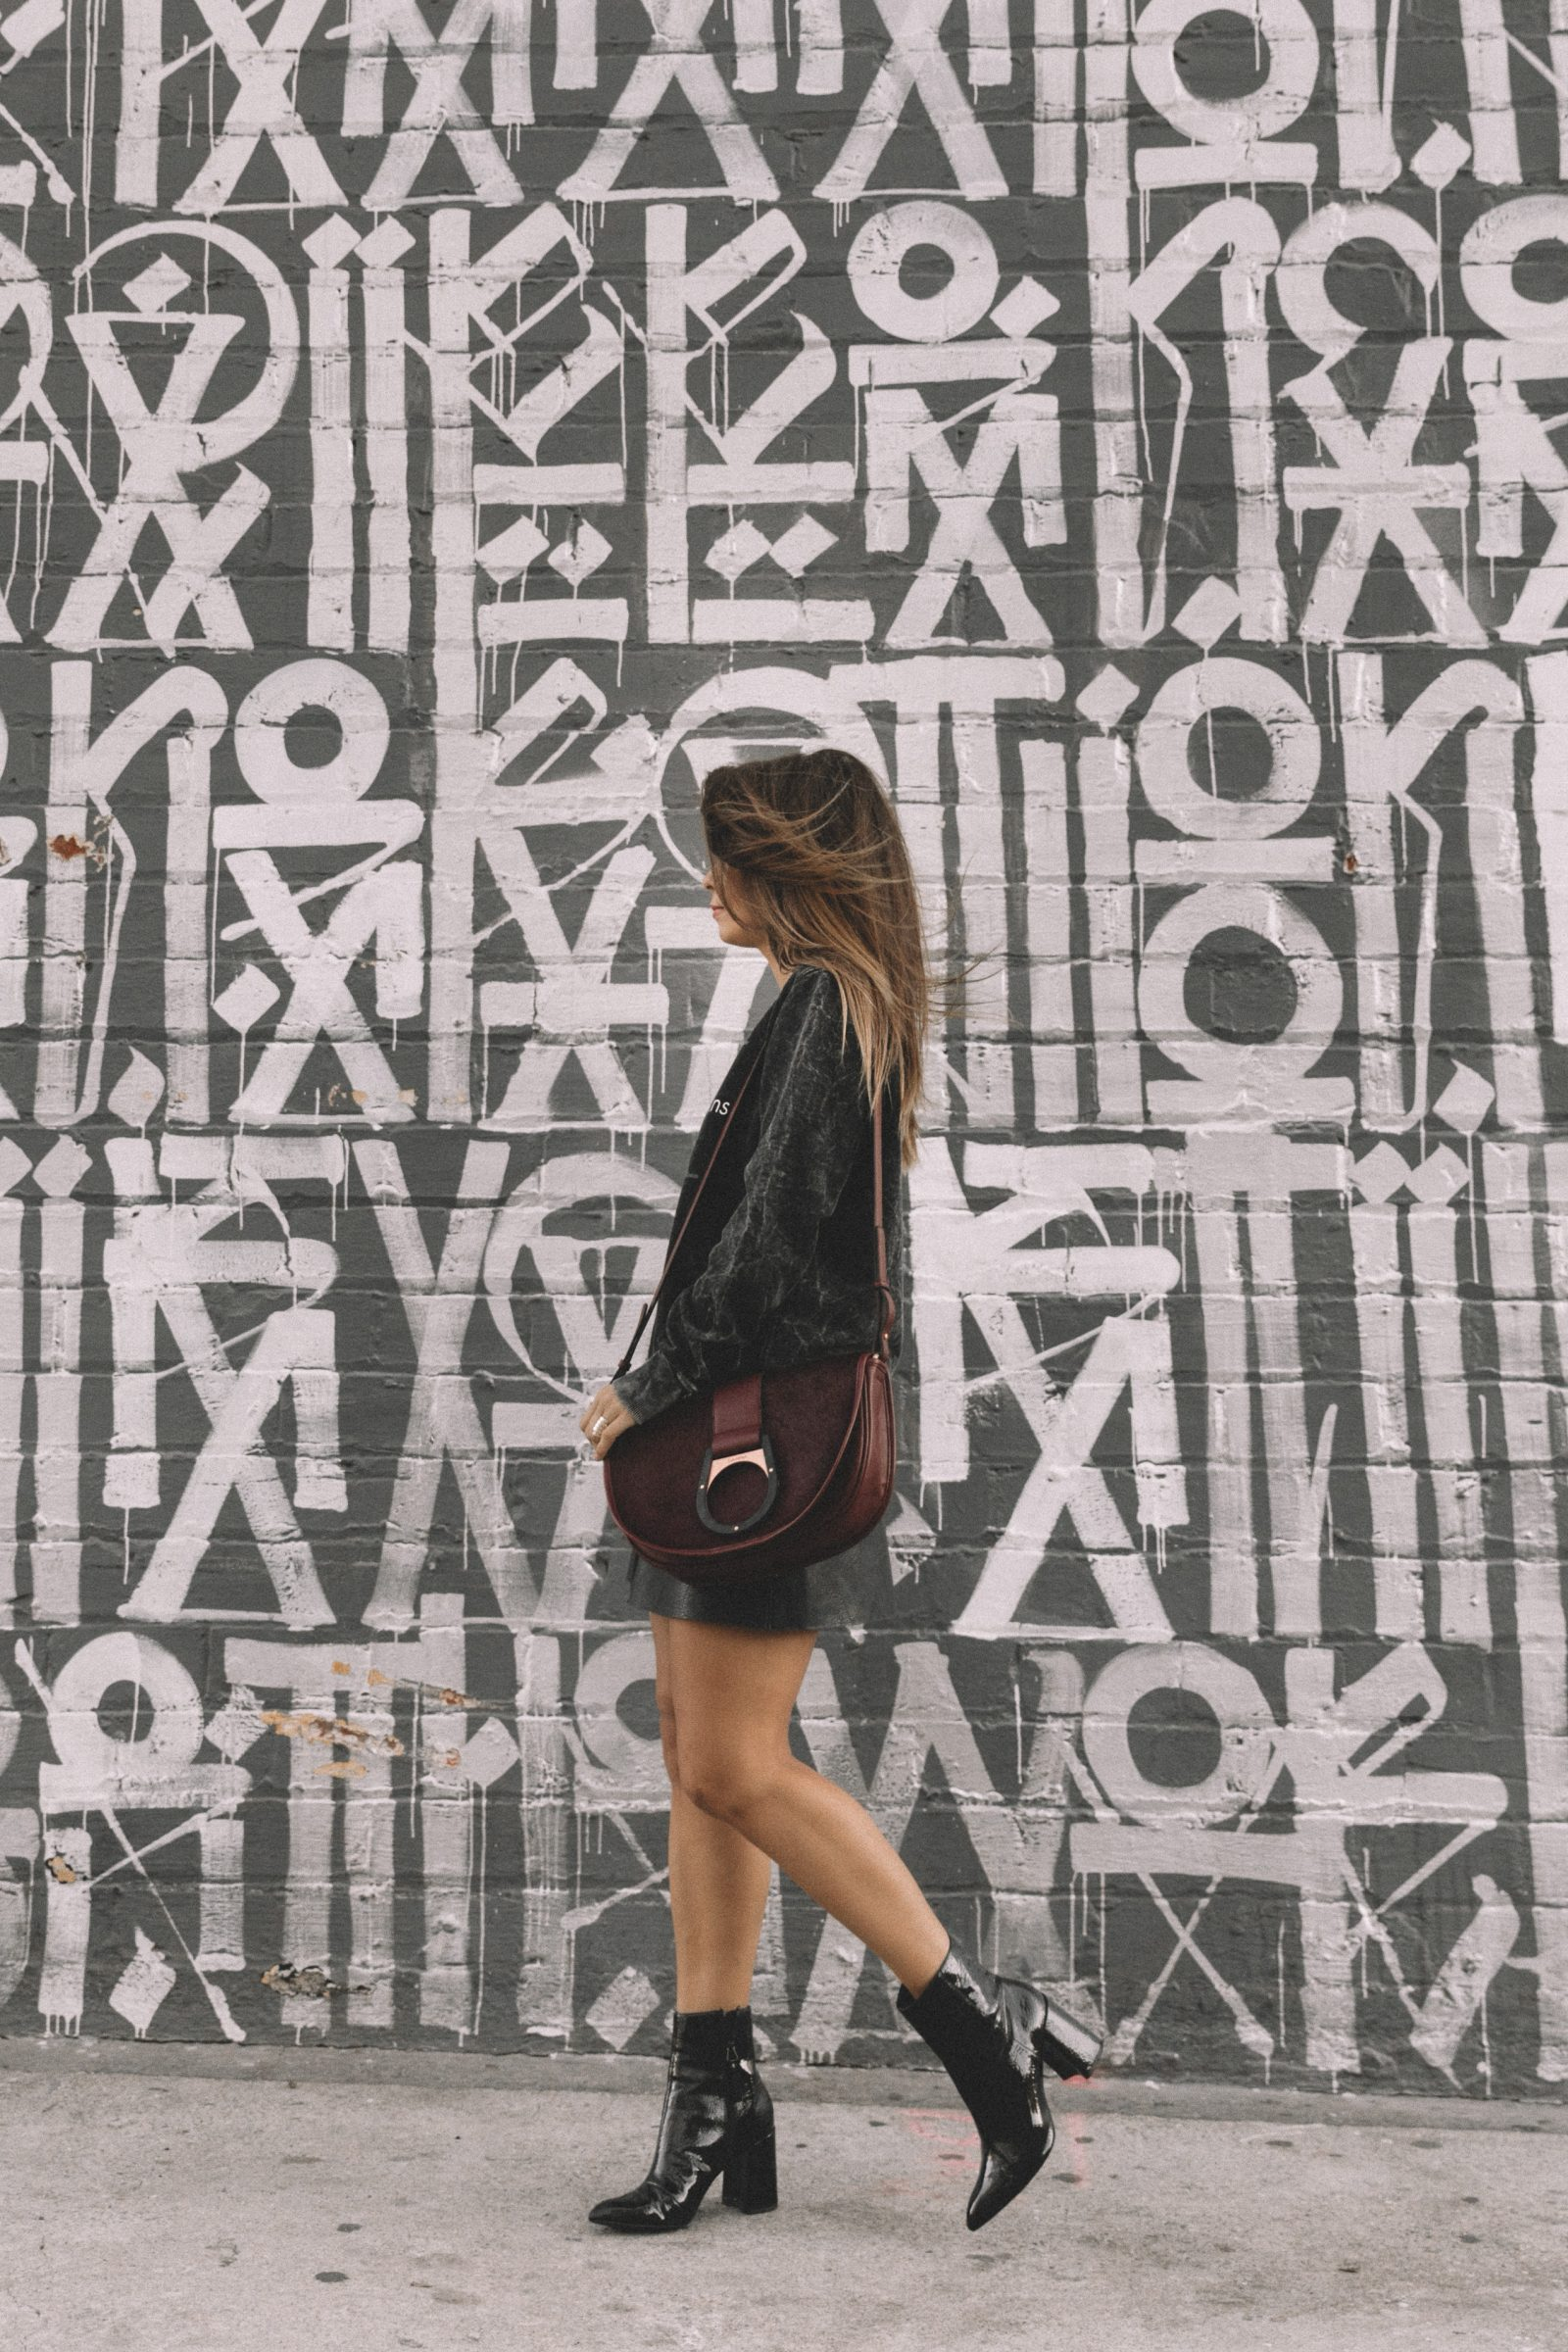 calvin_klein_bag-burgundy_bag-ck_sweatshirt-leather_shirt-total_black_outfit-street_style-los_angeles-collage_vintage-44